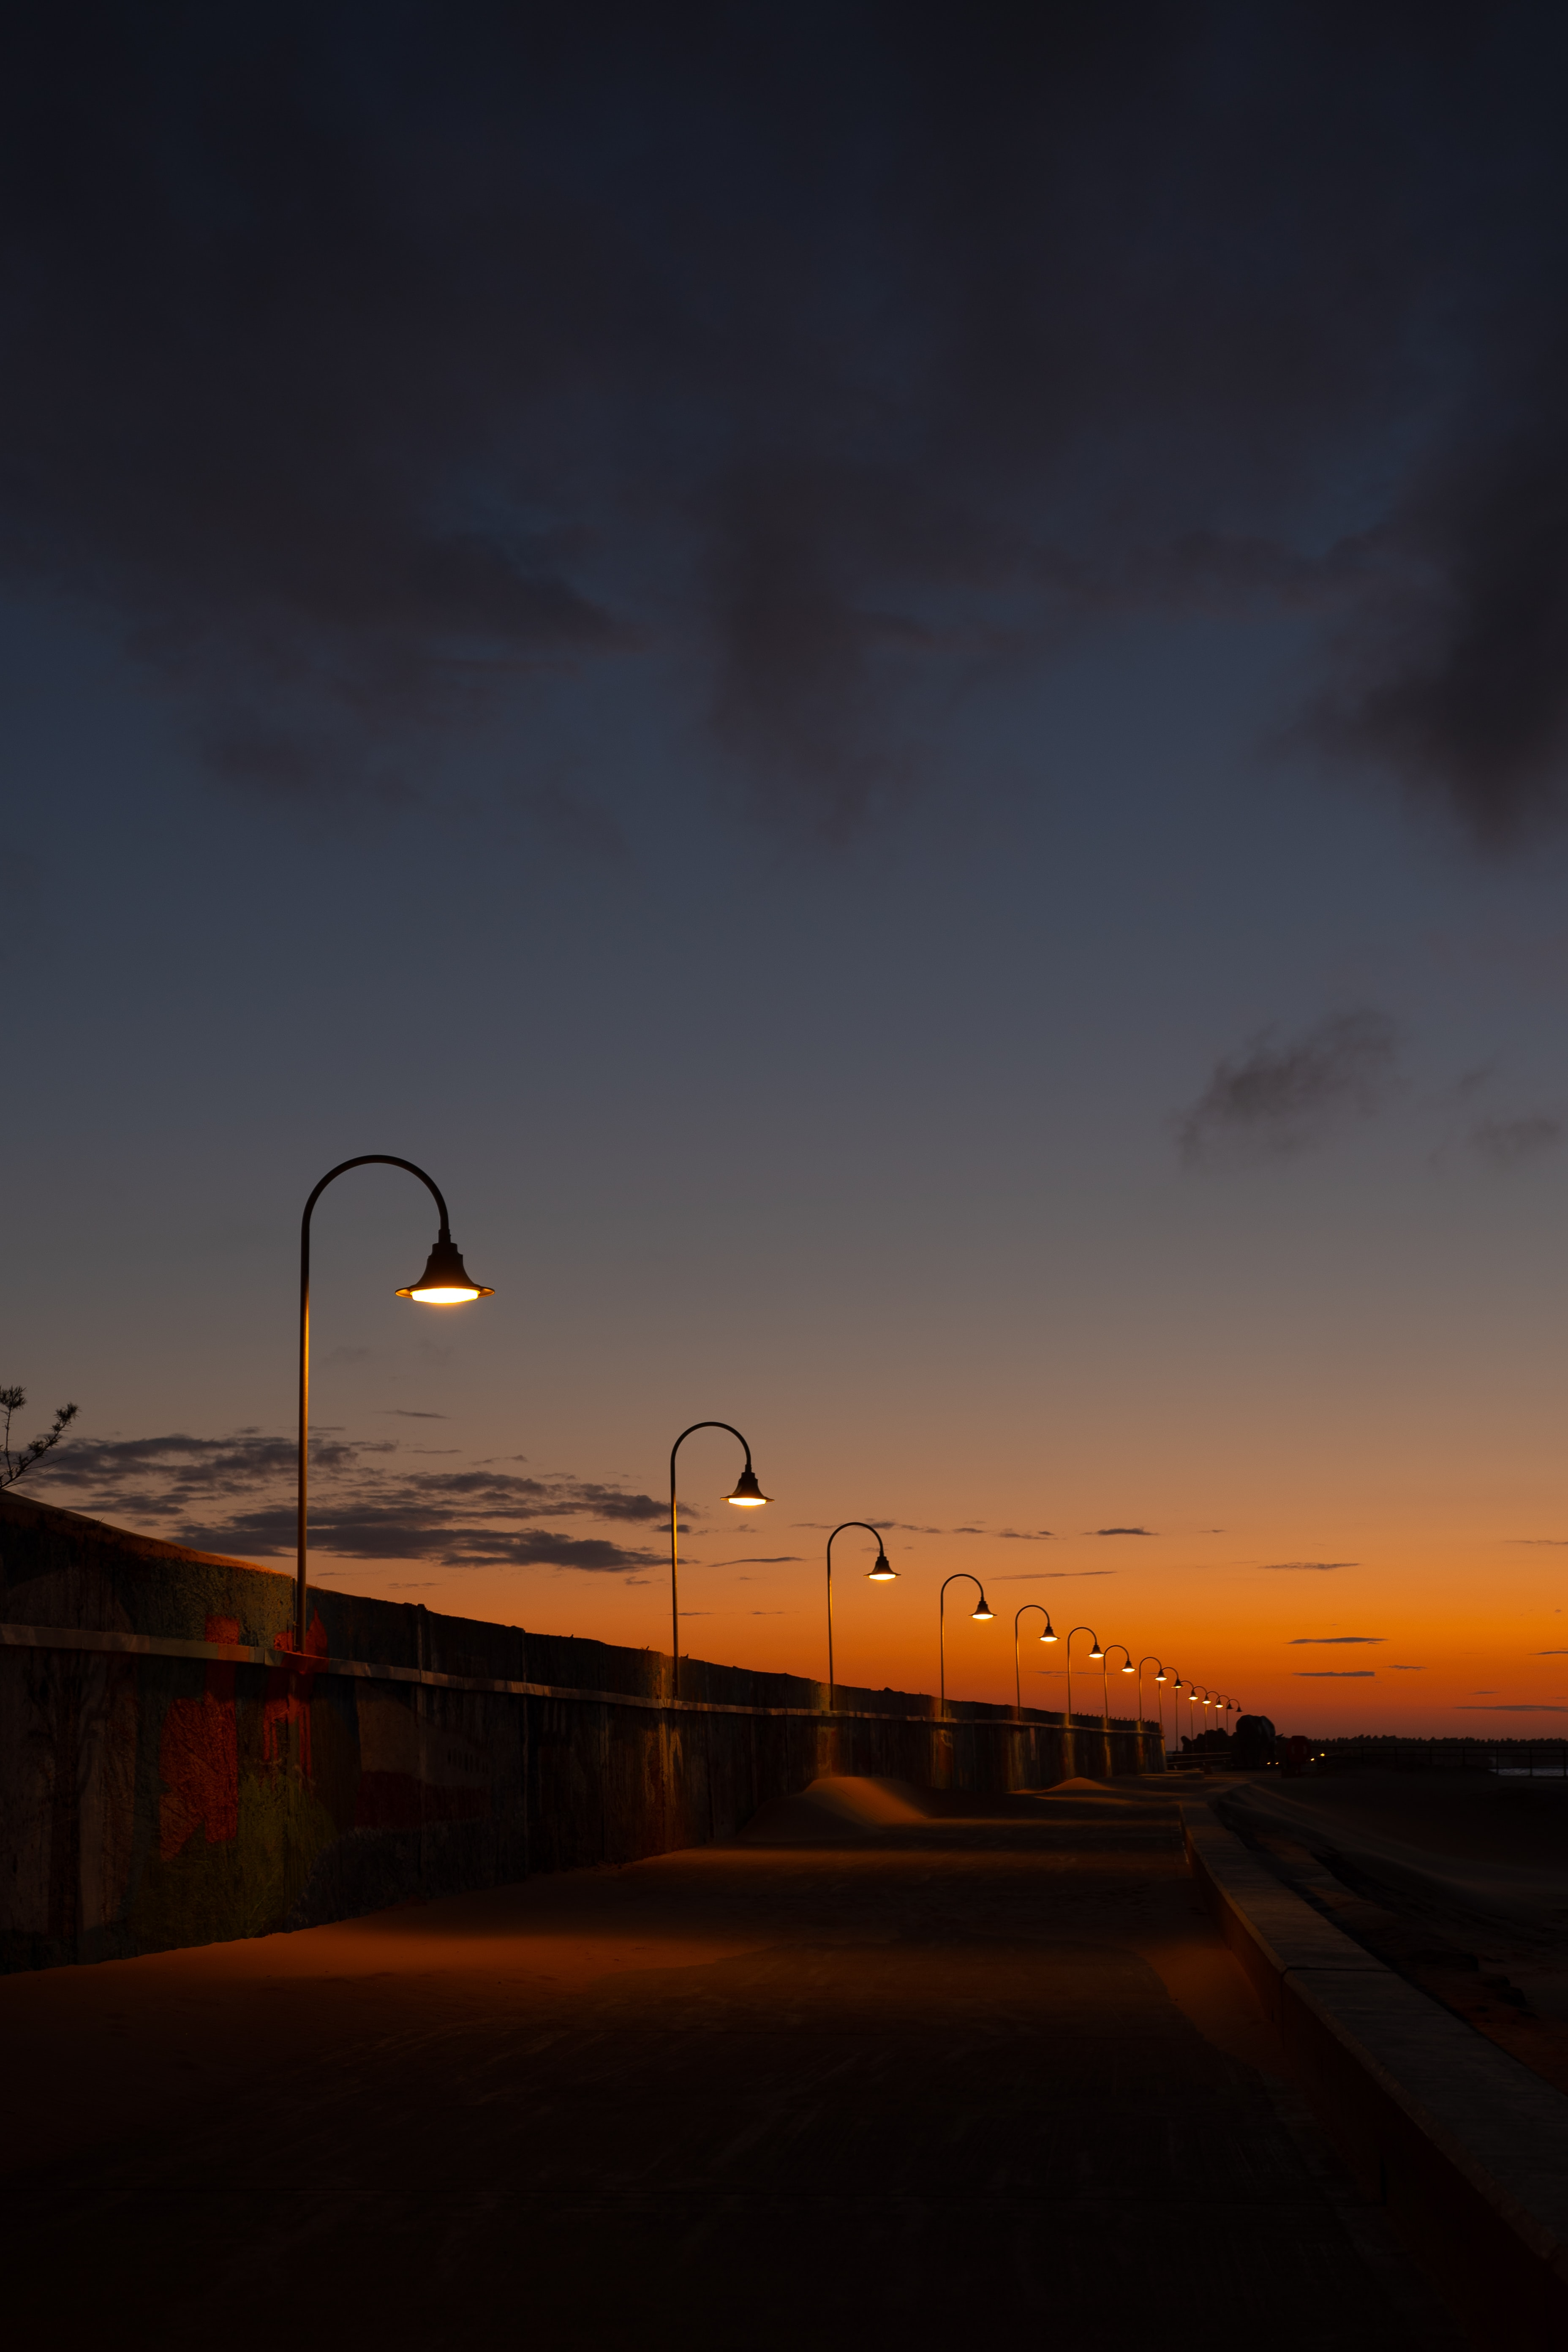 113641 free wallpaper 2160x3840 for phone, download images Cities, Sunset, Lights, Road, Lanterns, Evening 2160x3840 for mobile